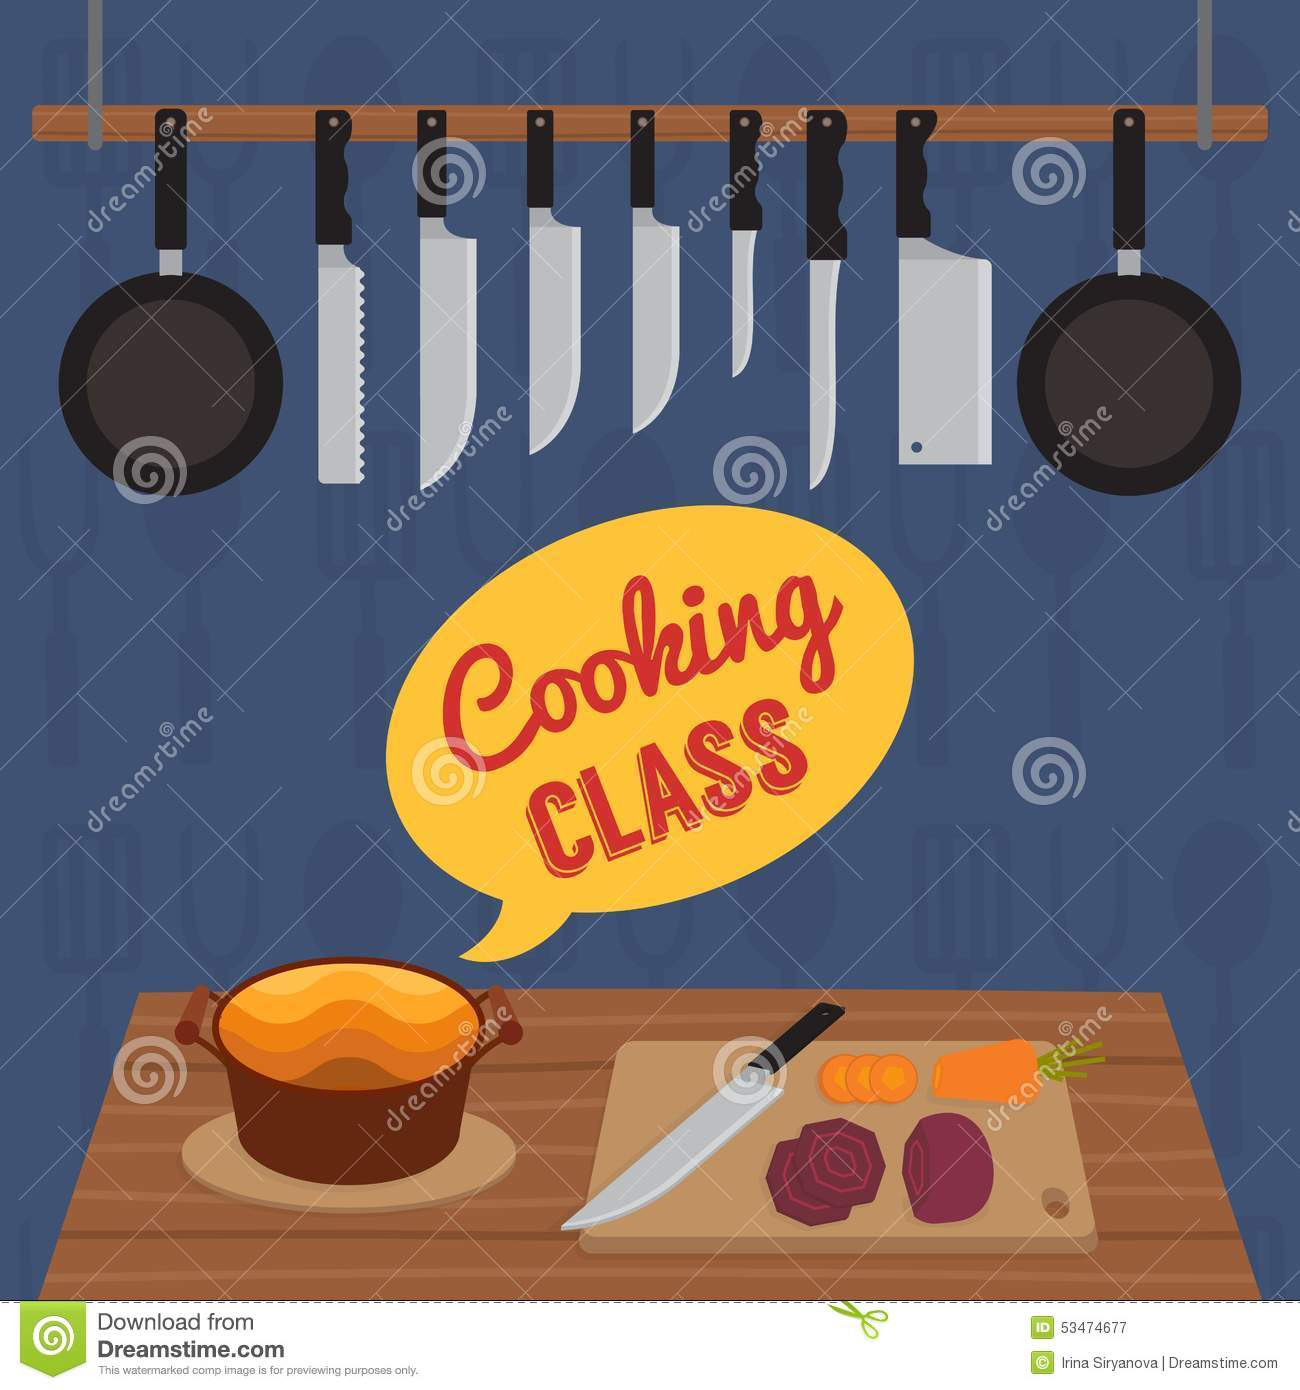 Culinary Cooking Class Stock Vector. Image Of Preparation